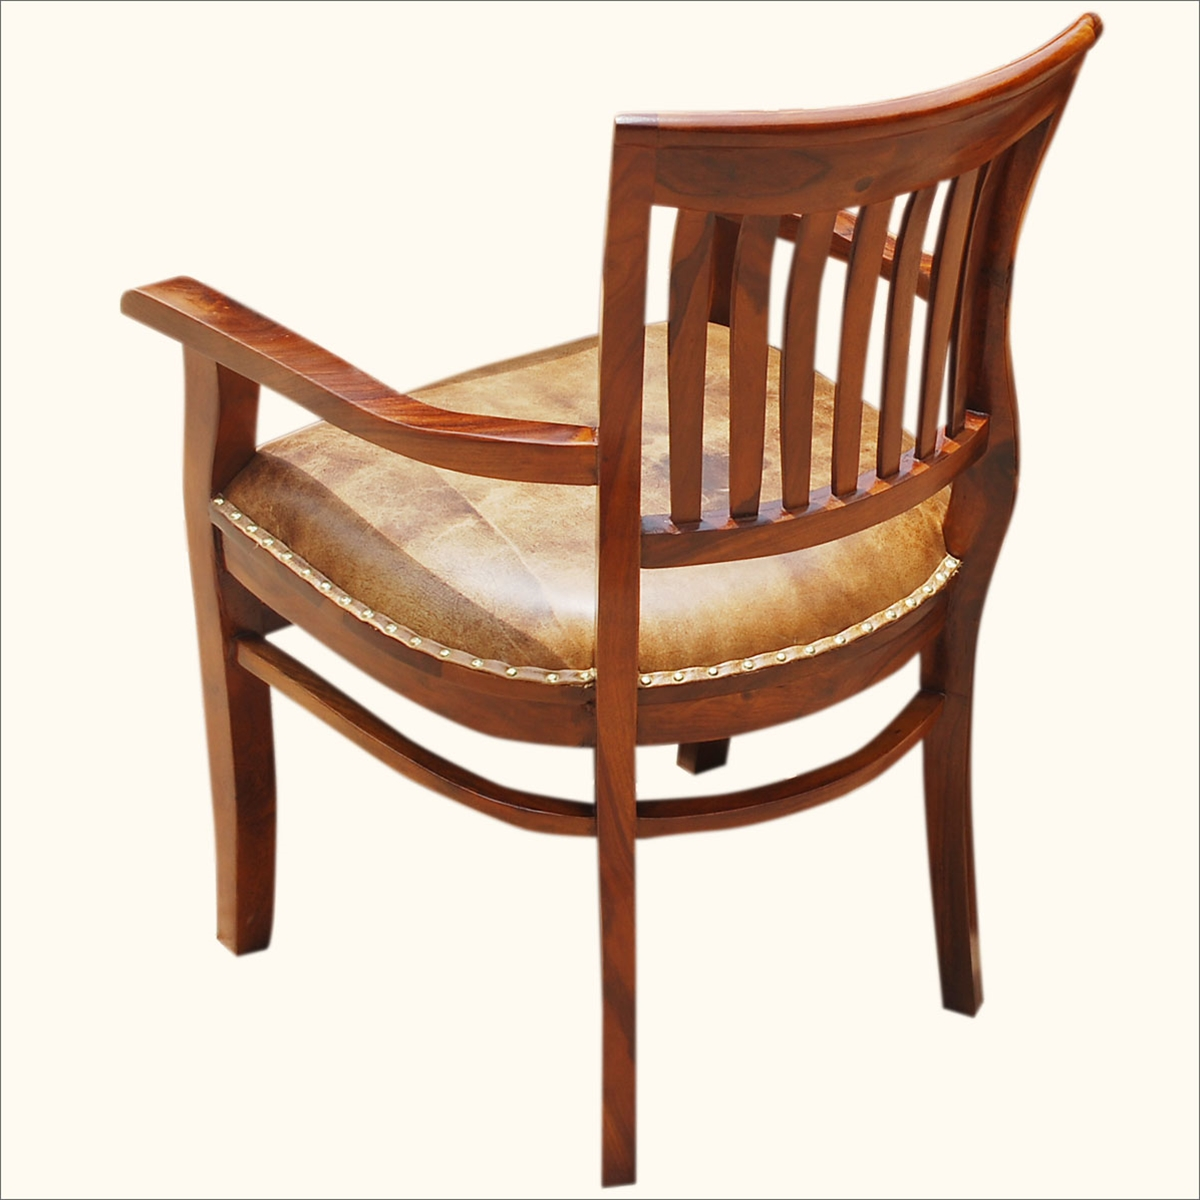 Image of: Trend Unfinished Wood Dining Chairs